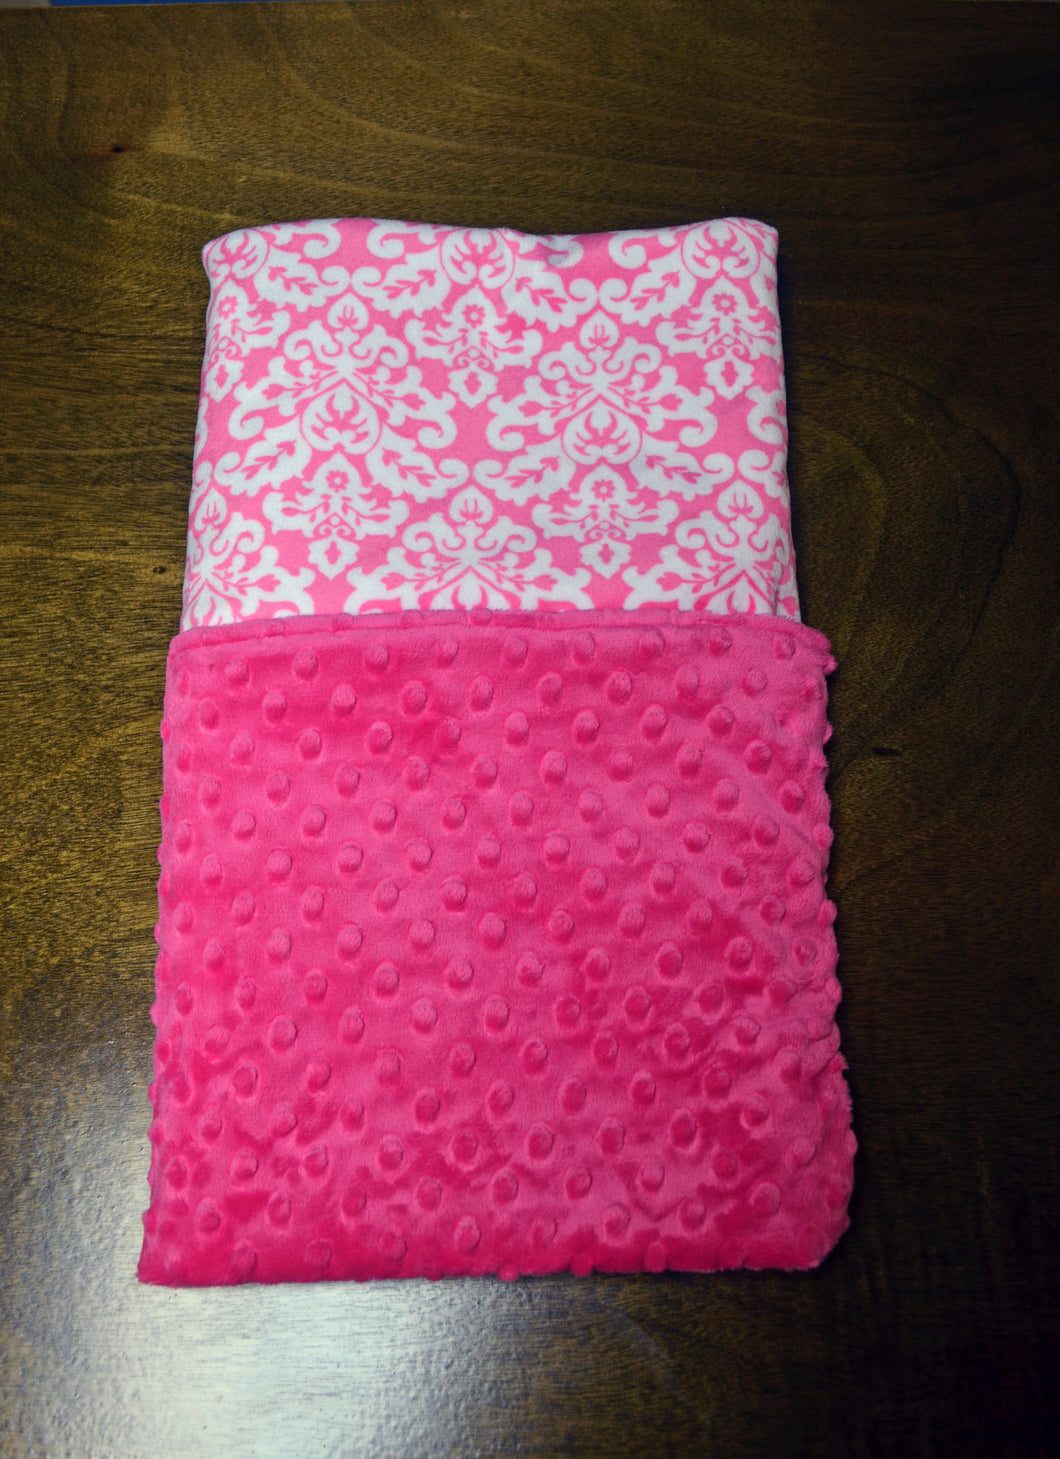 Personalized Pink and White Minky Baby Blanket-Baby Blanket-Baby Girl Blanket-Minky Baby Blanket-Going Home Blanket-Soft Baby Blanket